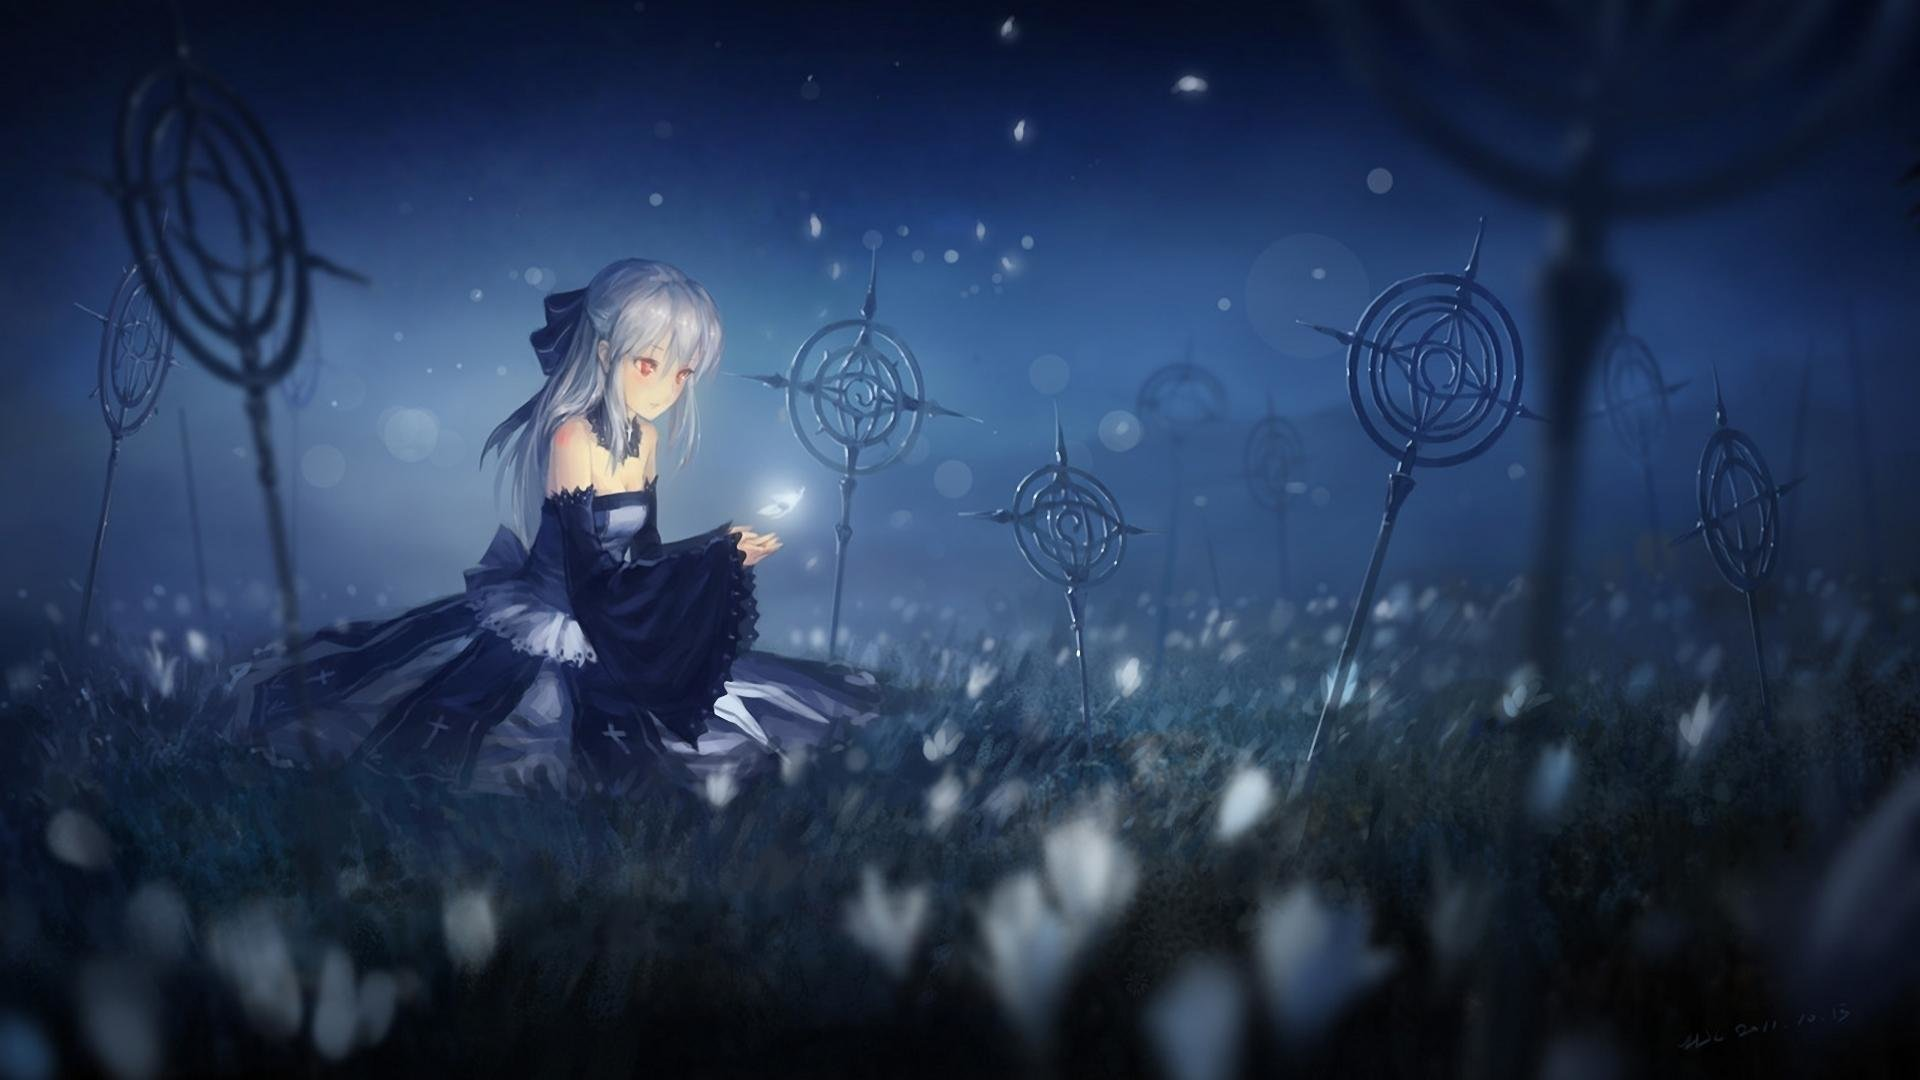 Awesome Pixiv Fantasia free wallpaper ID:56175 for full hd computer